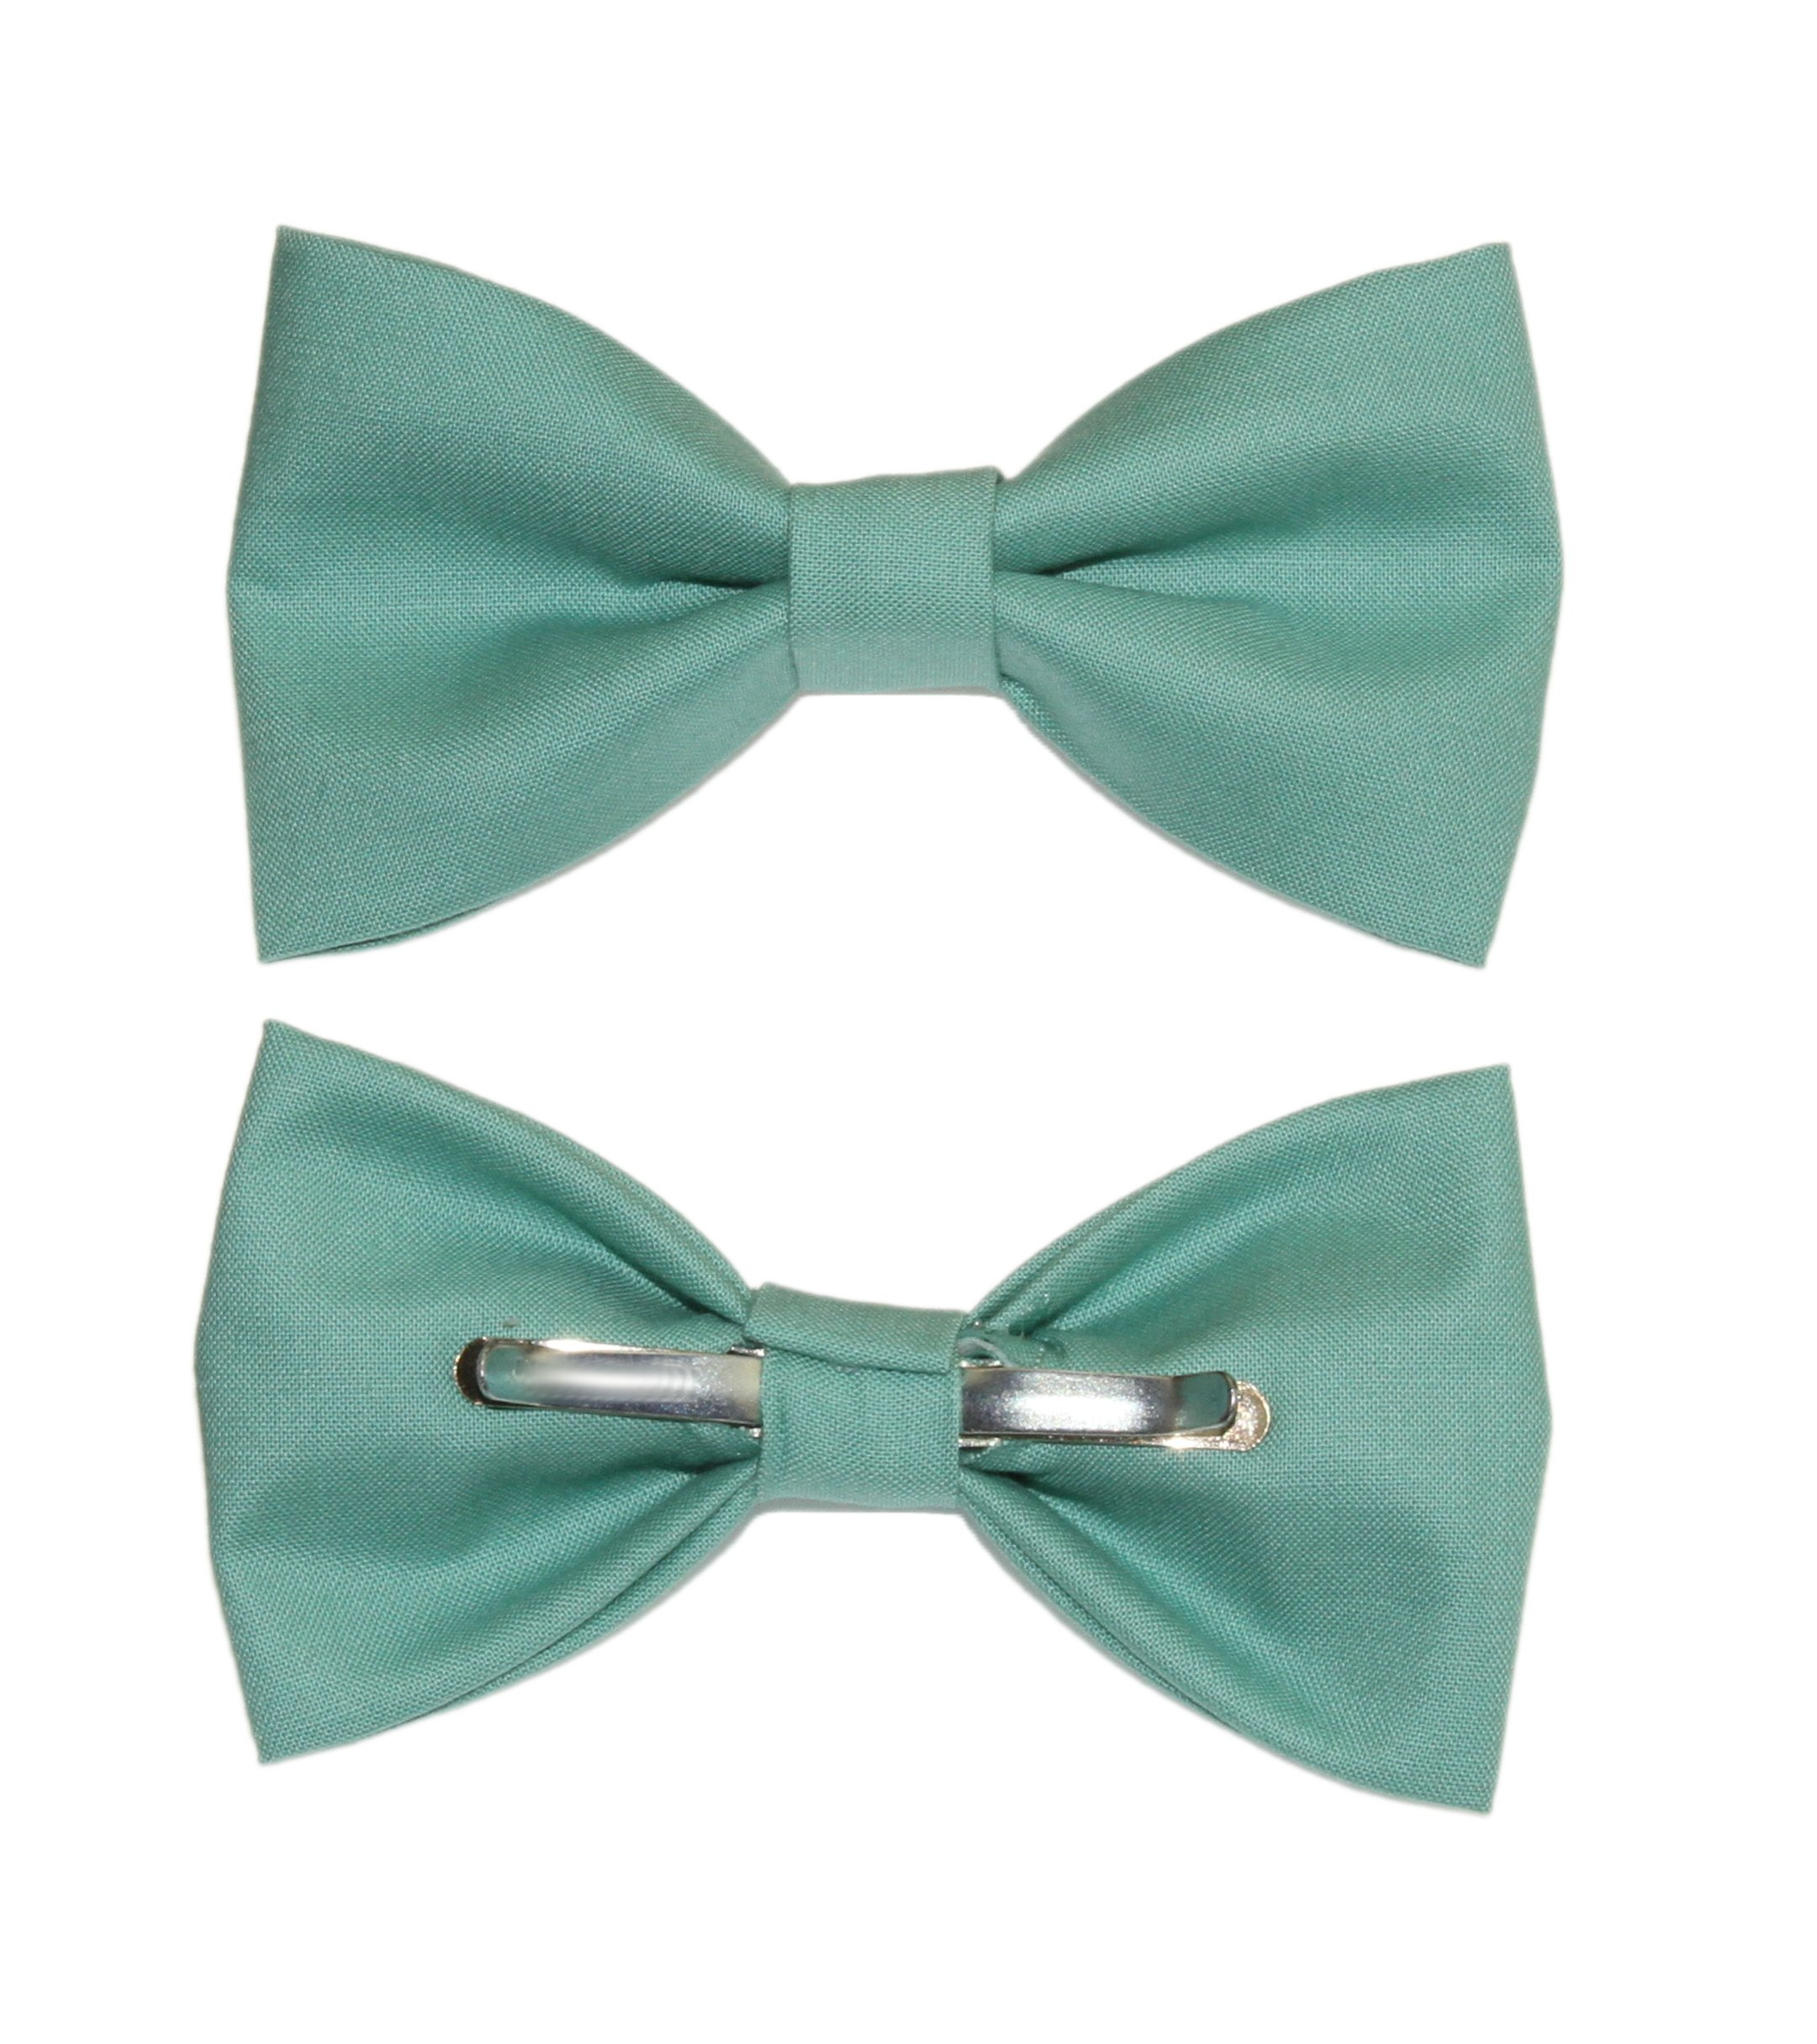 Men's Sage Green Clip On Cotton Bow Tie Bowtie amy2004marie